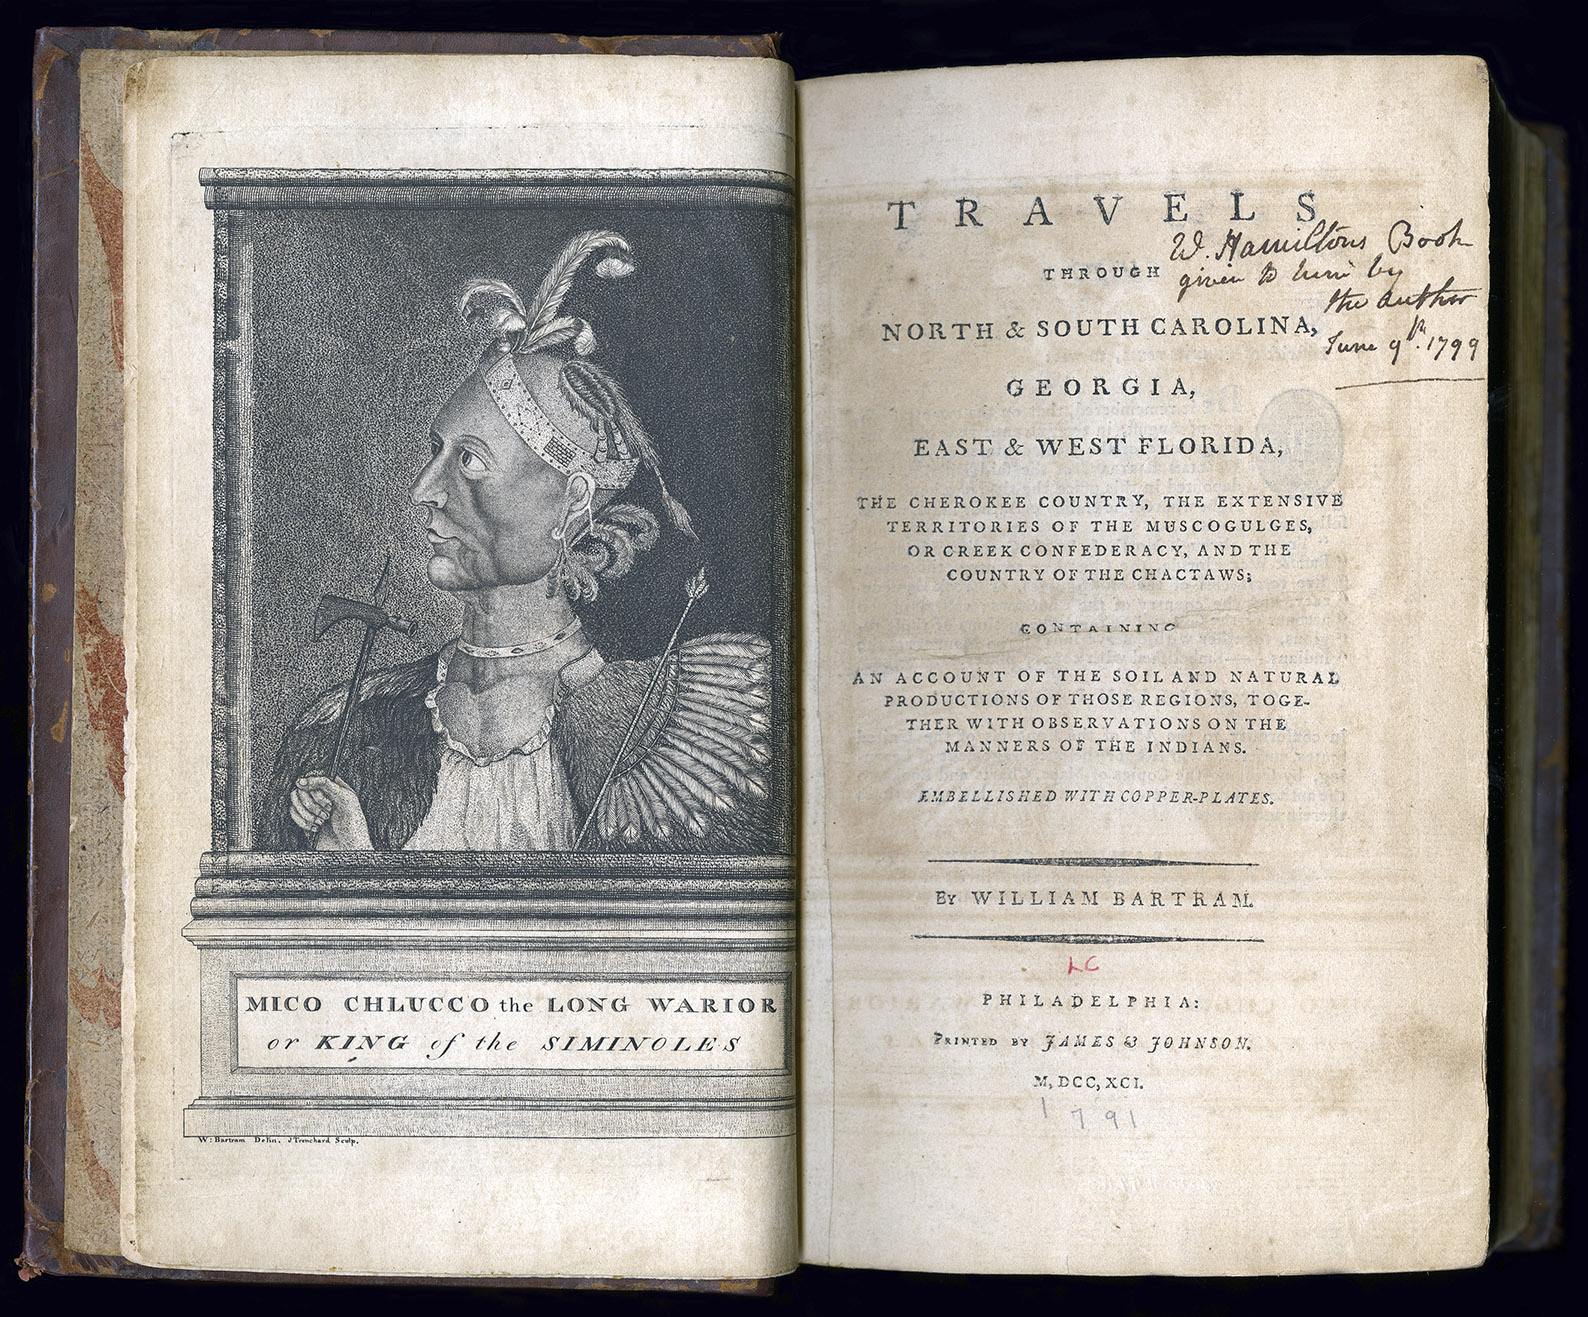 """""""W. Hamilton's Book given to him by the Author June 9th, 1799"""" is inscribed on the cover page. (Image courtesy of the Sterling Morton Library)"""